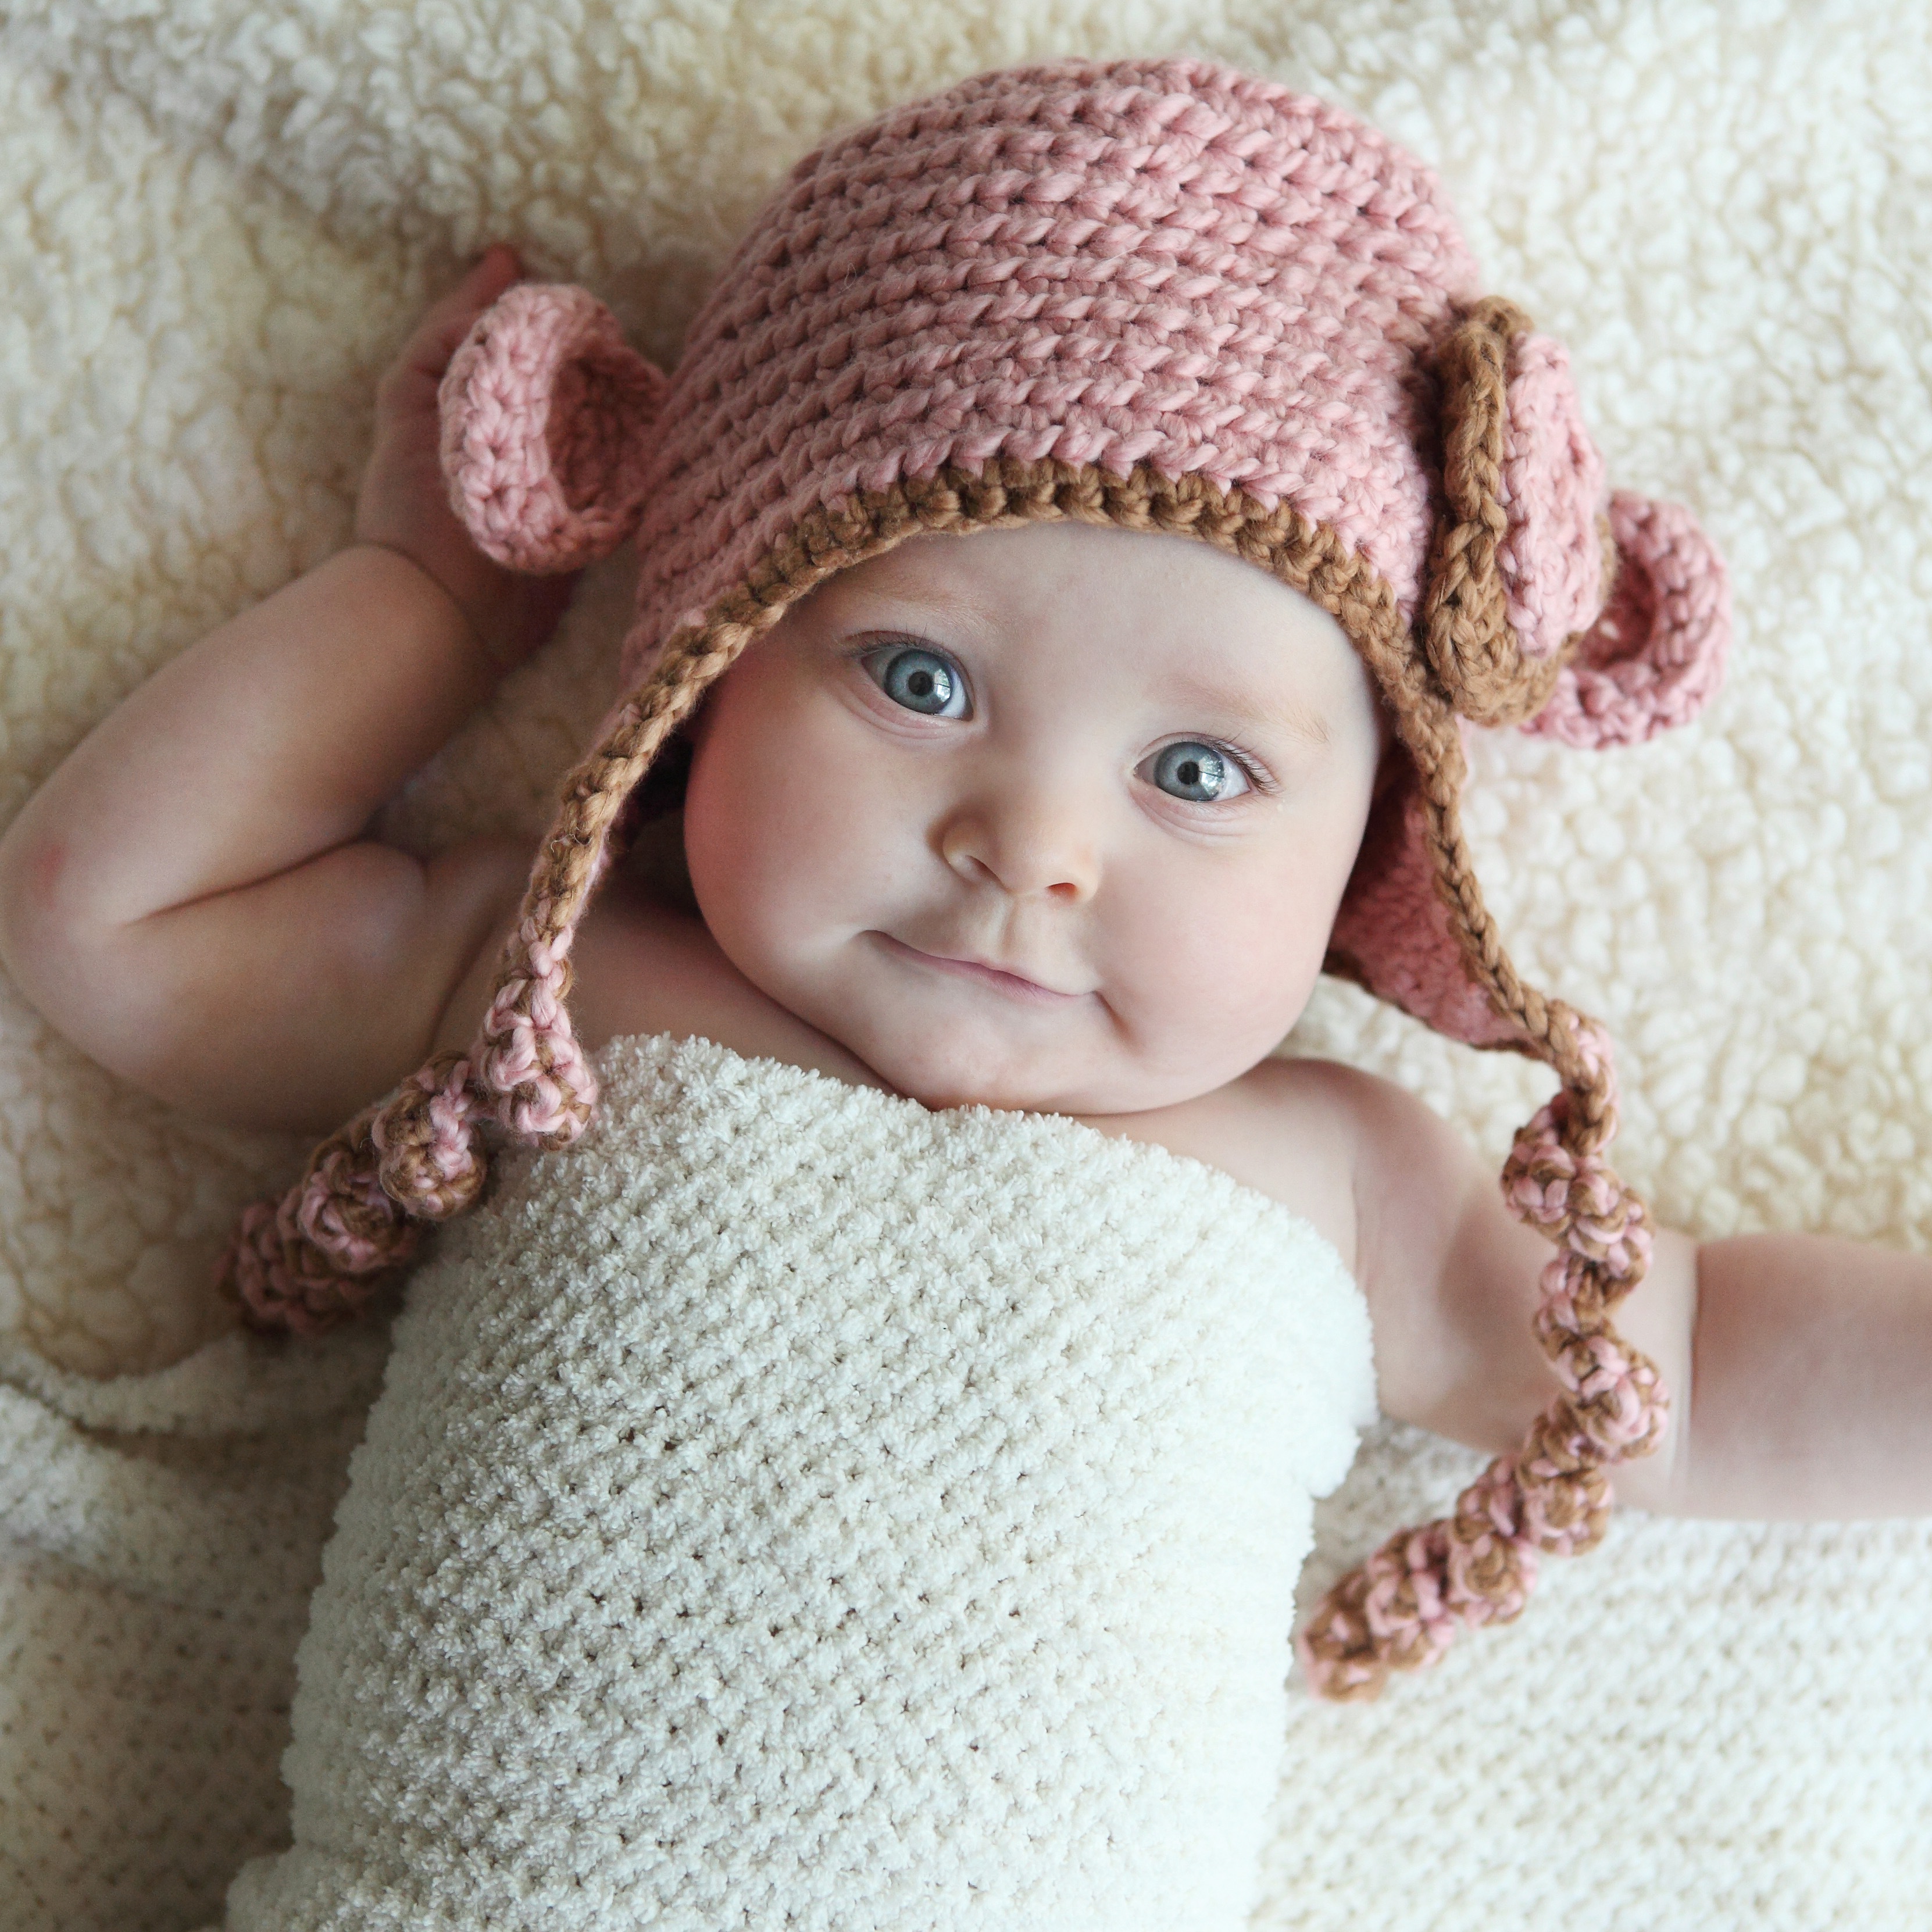 portrait of cute baby - photo #34